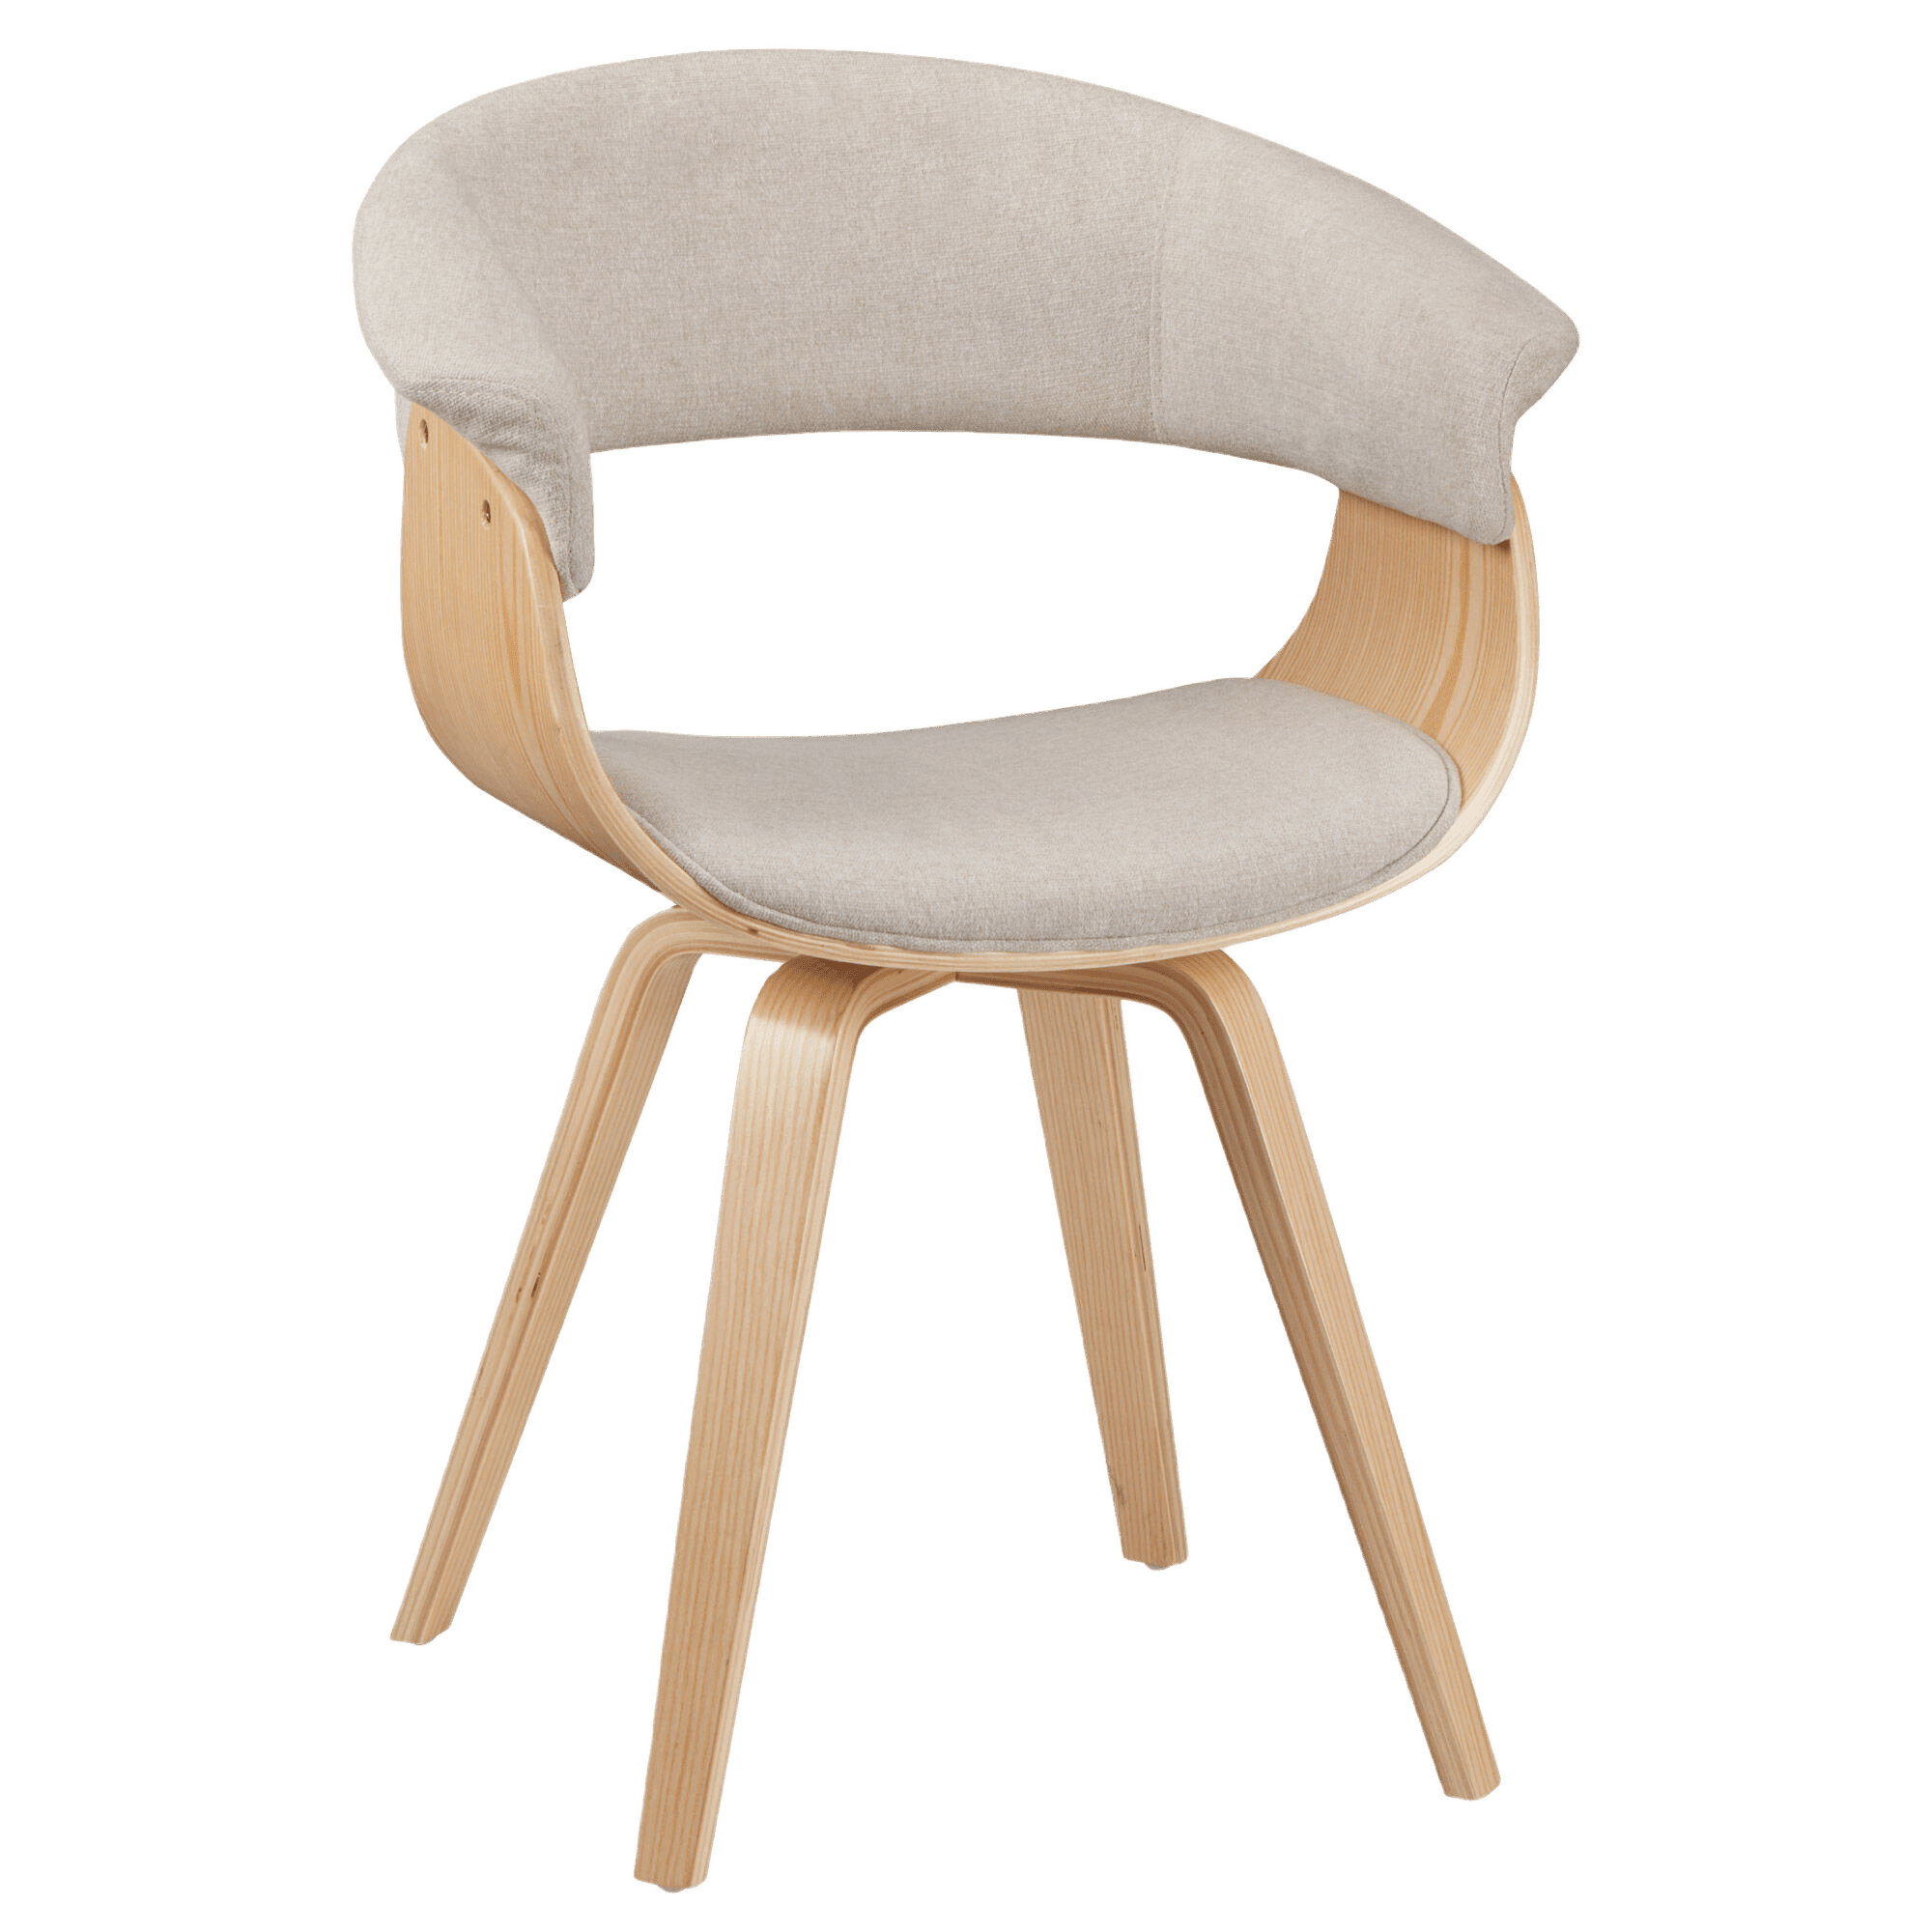 Natural Fabric and Wood Chair